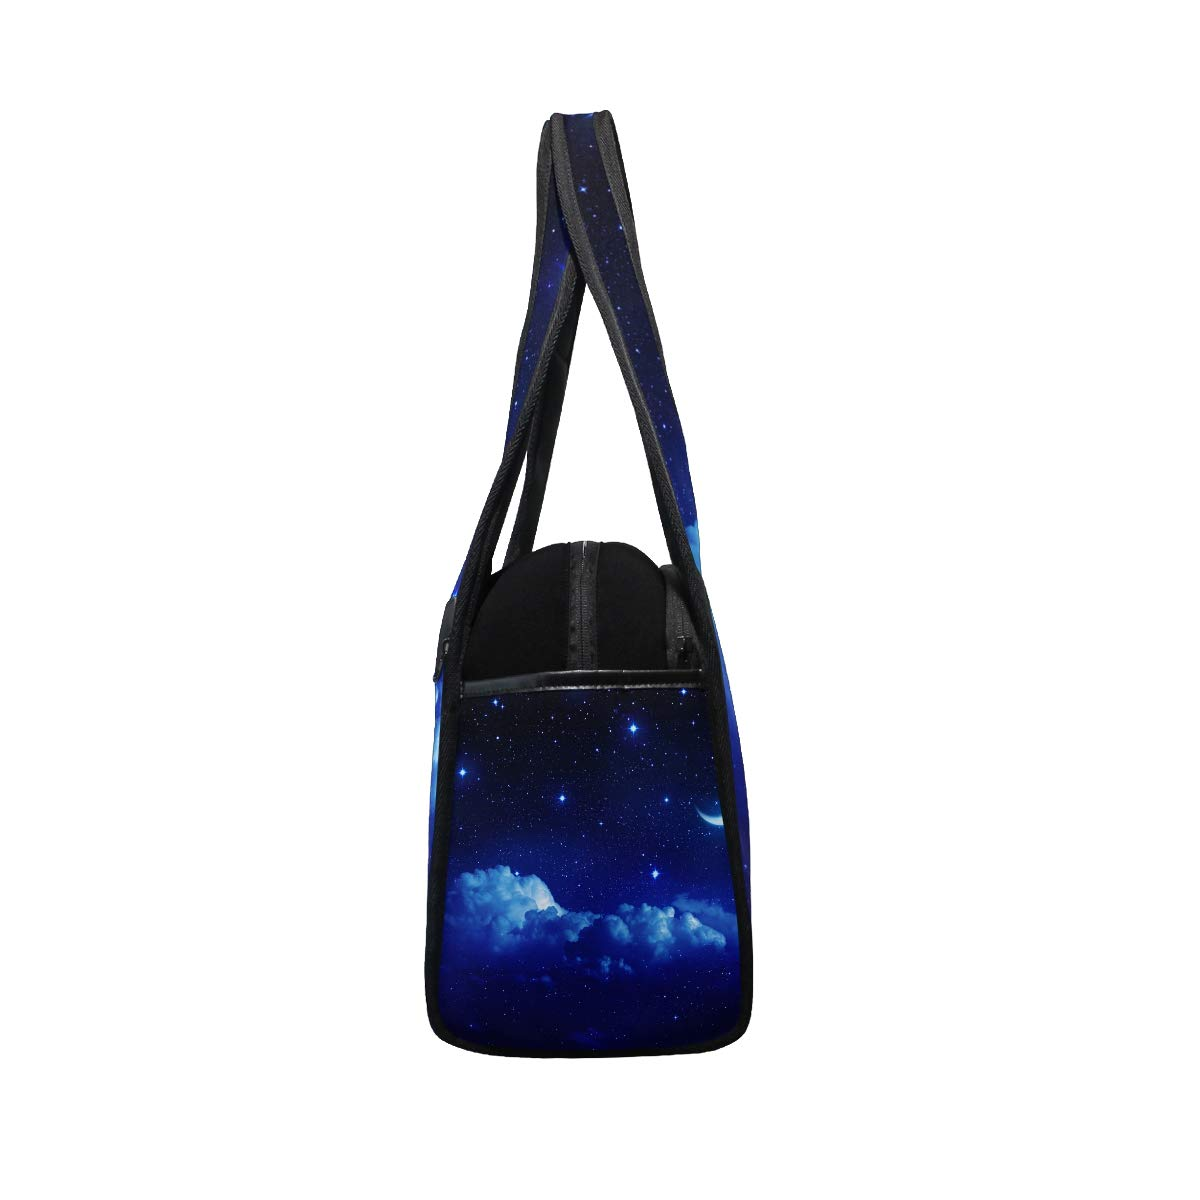 Beauty Moonlight Pattern Women Sports Gym Totes Bag Multi-Function Nylon Travel Shoulder Bag